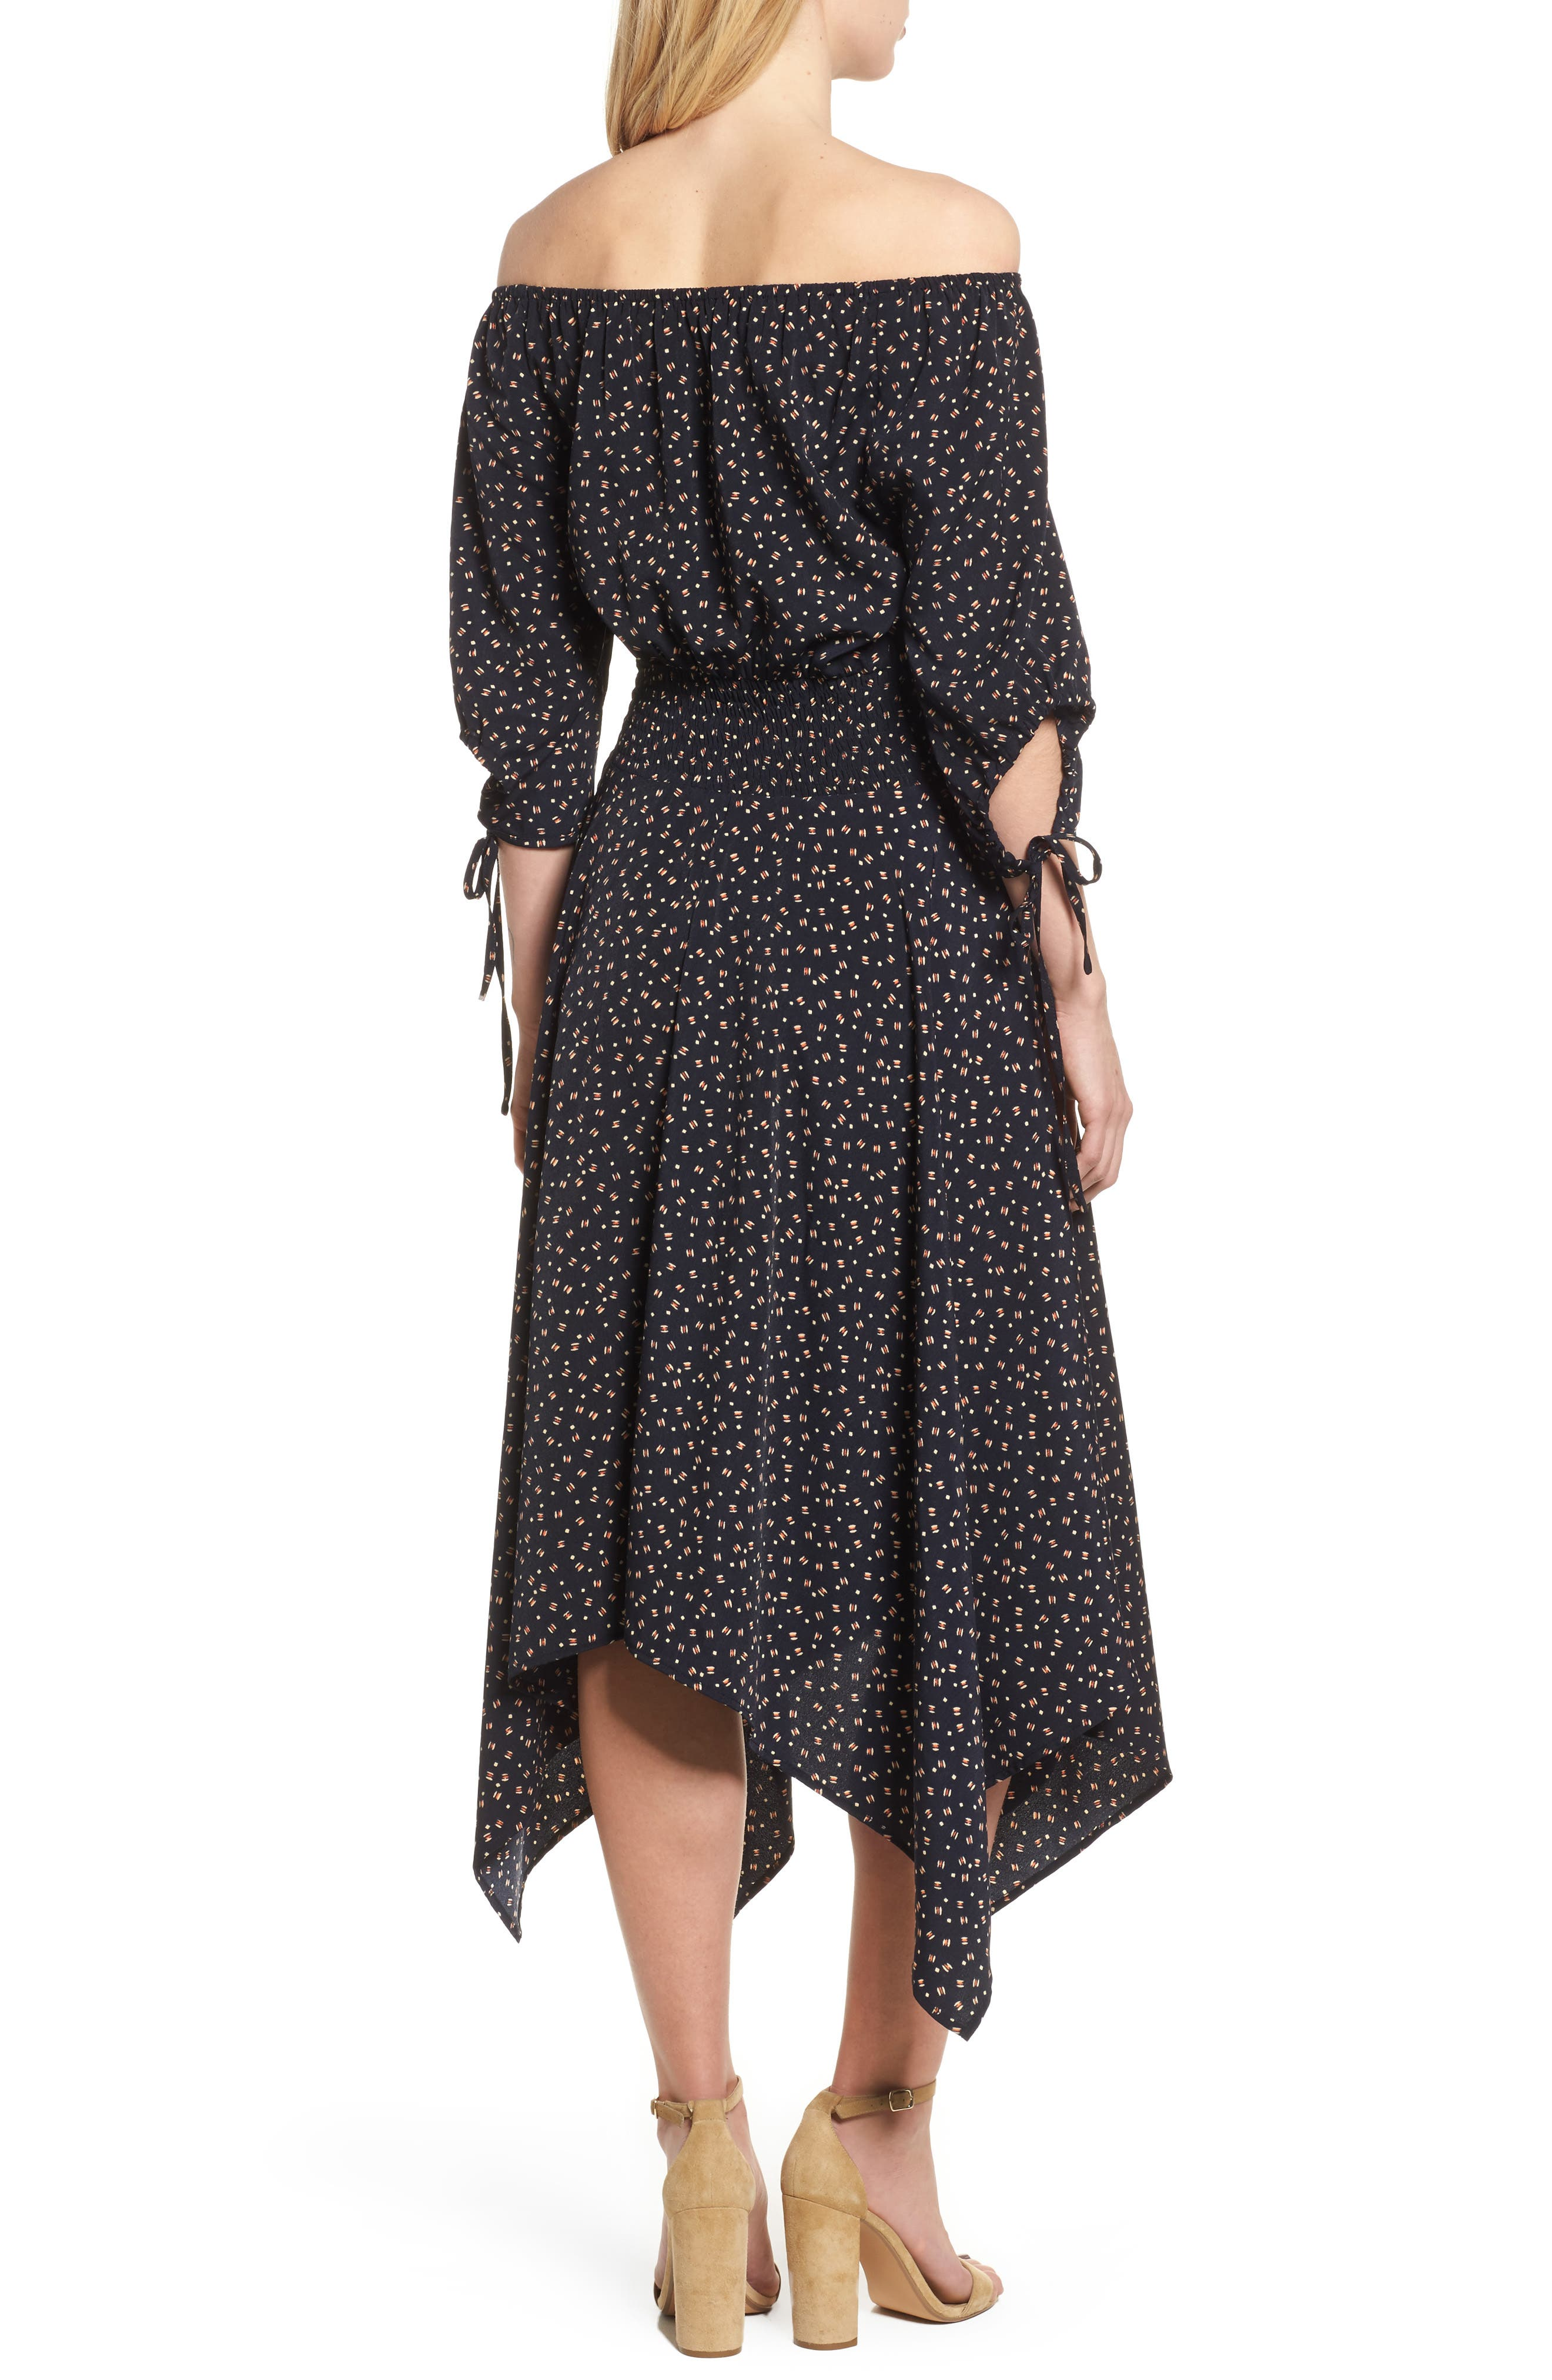 Bishop + Young Off the Shoulder Dress,                             Alternate thumbnail 2, color,                             Navy Print